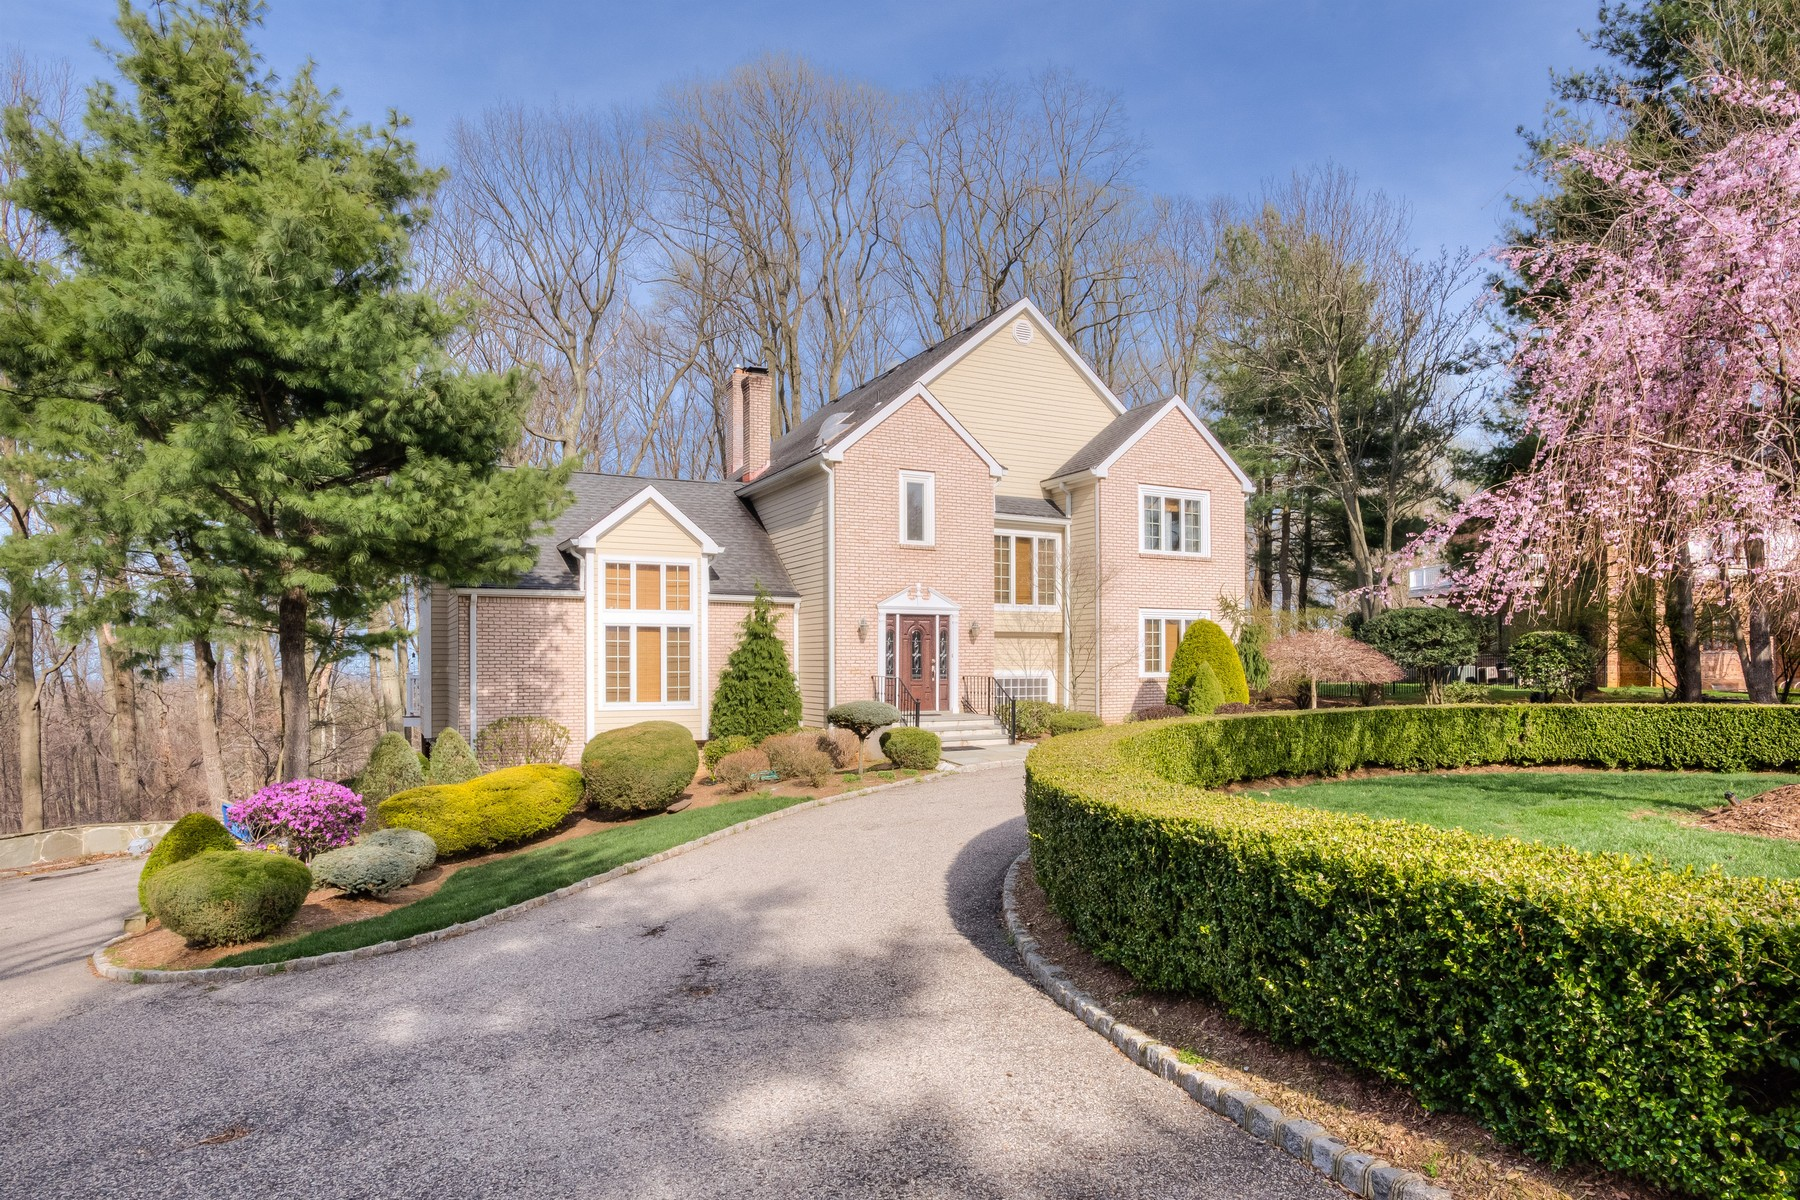 Single Family Home for Sale at Hilltop Privacy 10 Alexis Court Holmdel, New Jersey, 07733 United States